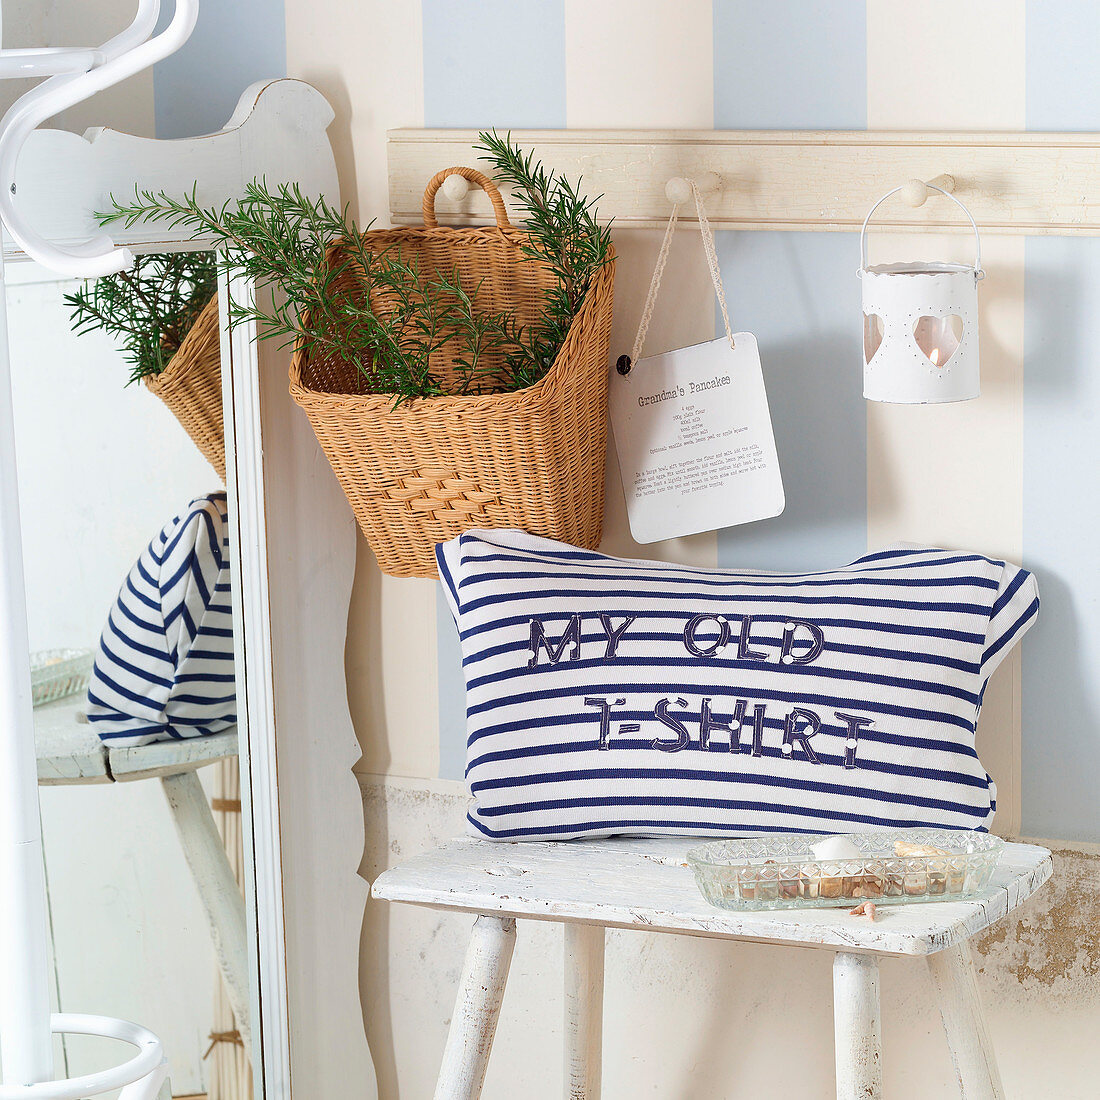 Maritime cushions with lettering made from old, blue-and-white striped T-shirt